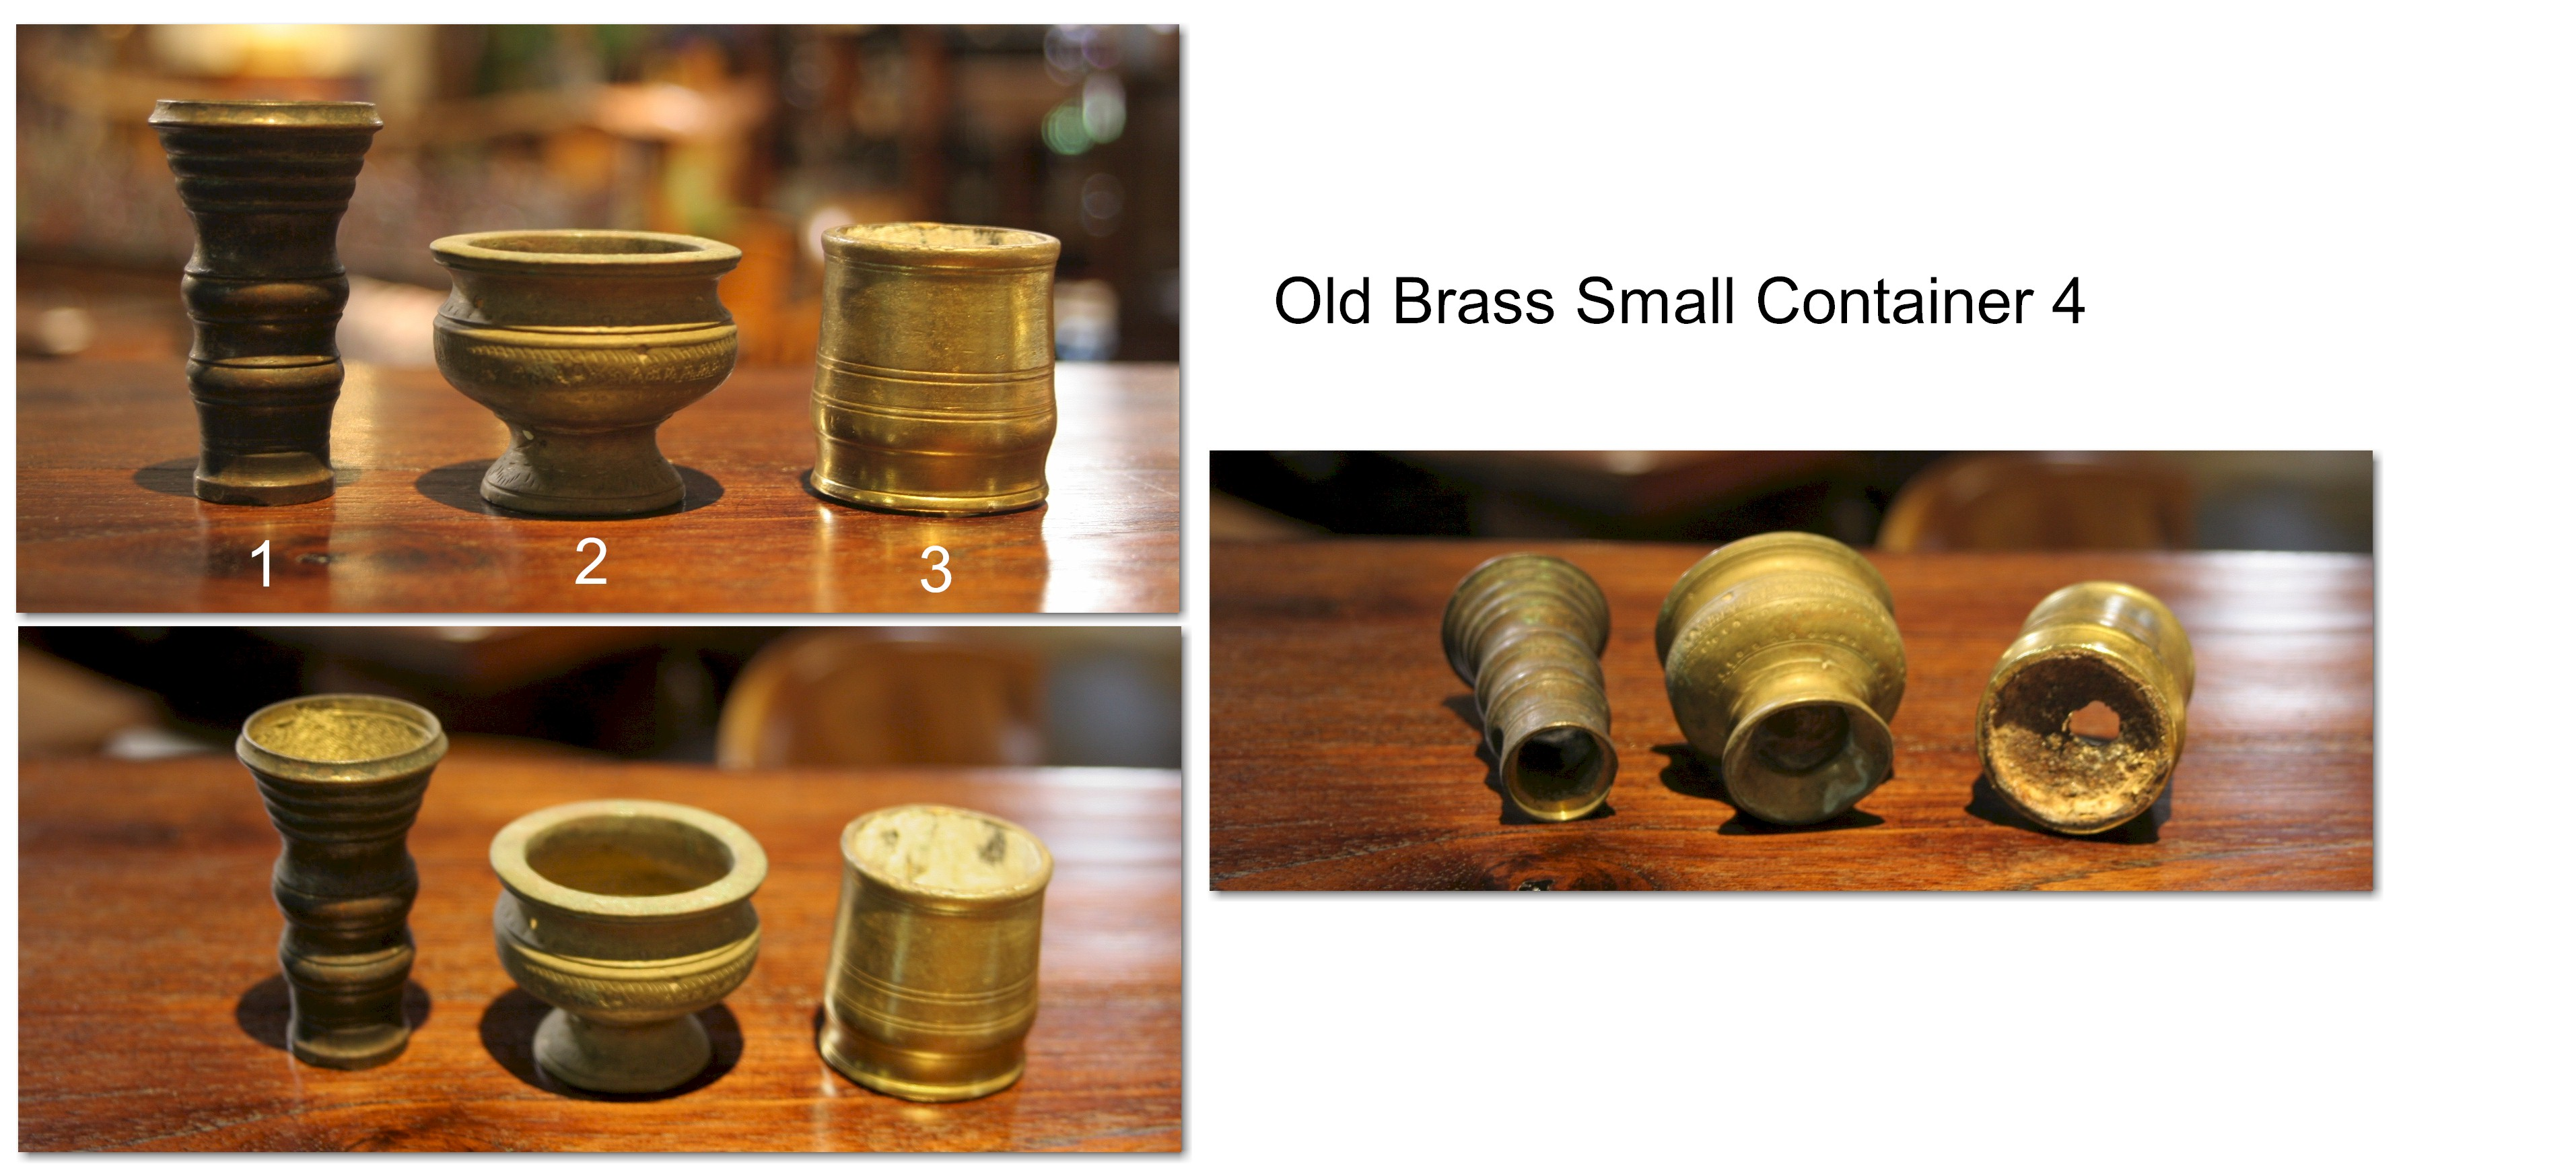 Old Brass Small Container 4